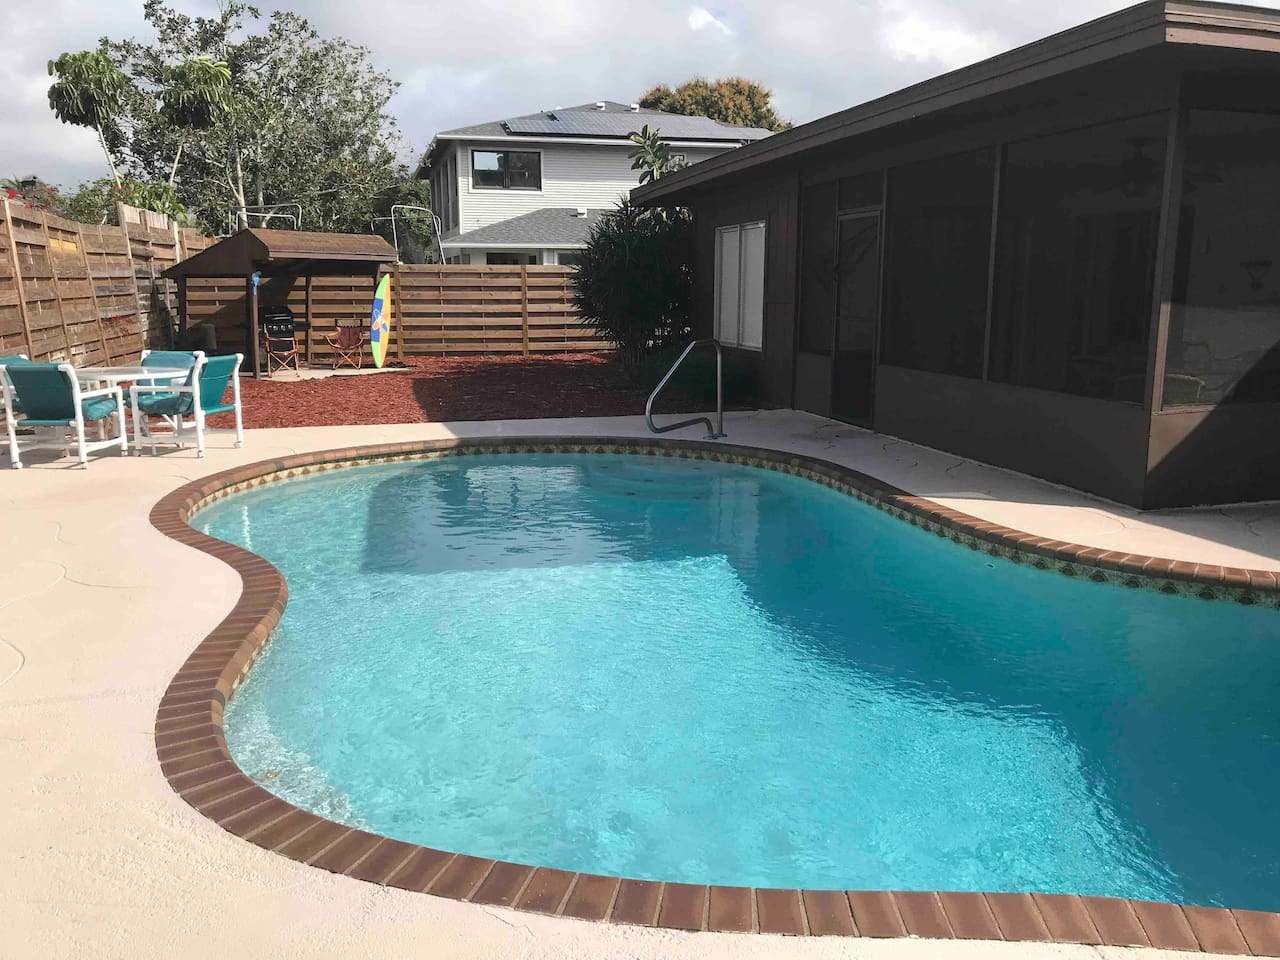 This is why you choose our vacation home. Great neighborhood! Great pool! Great house and Great fun!